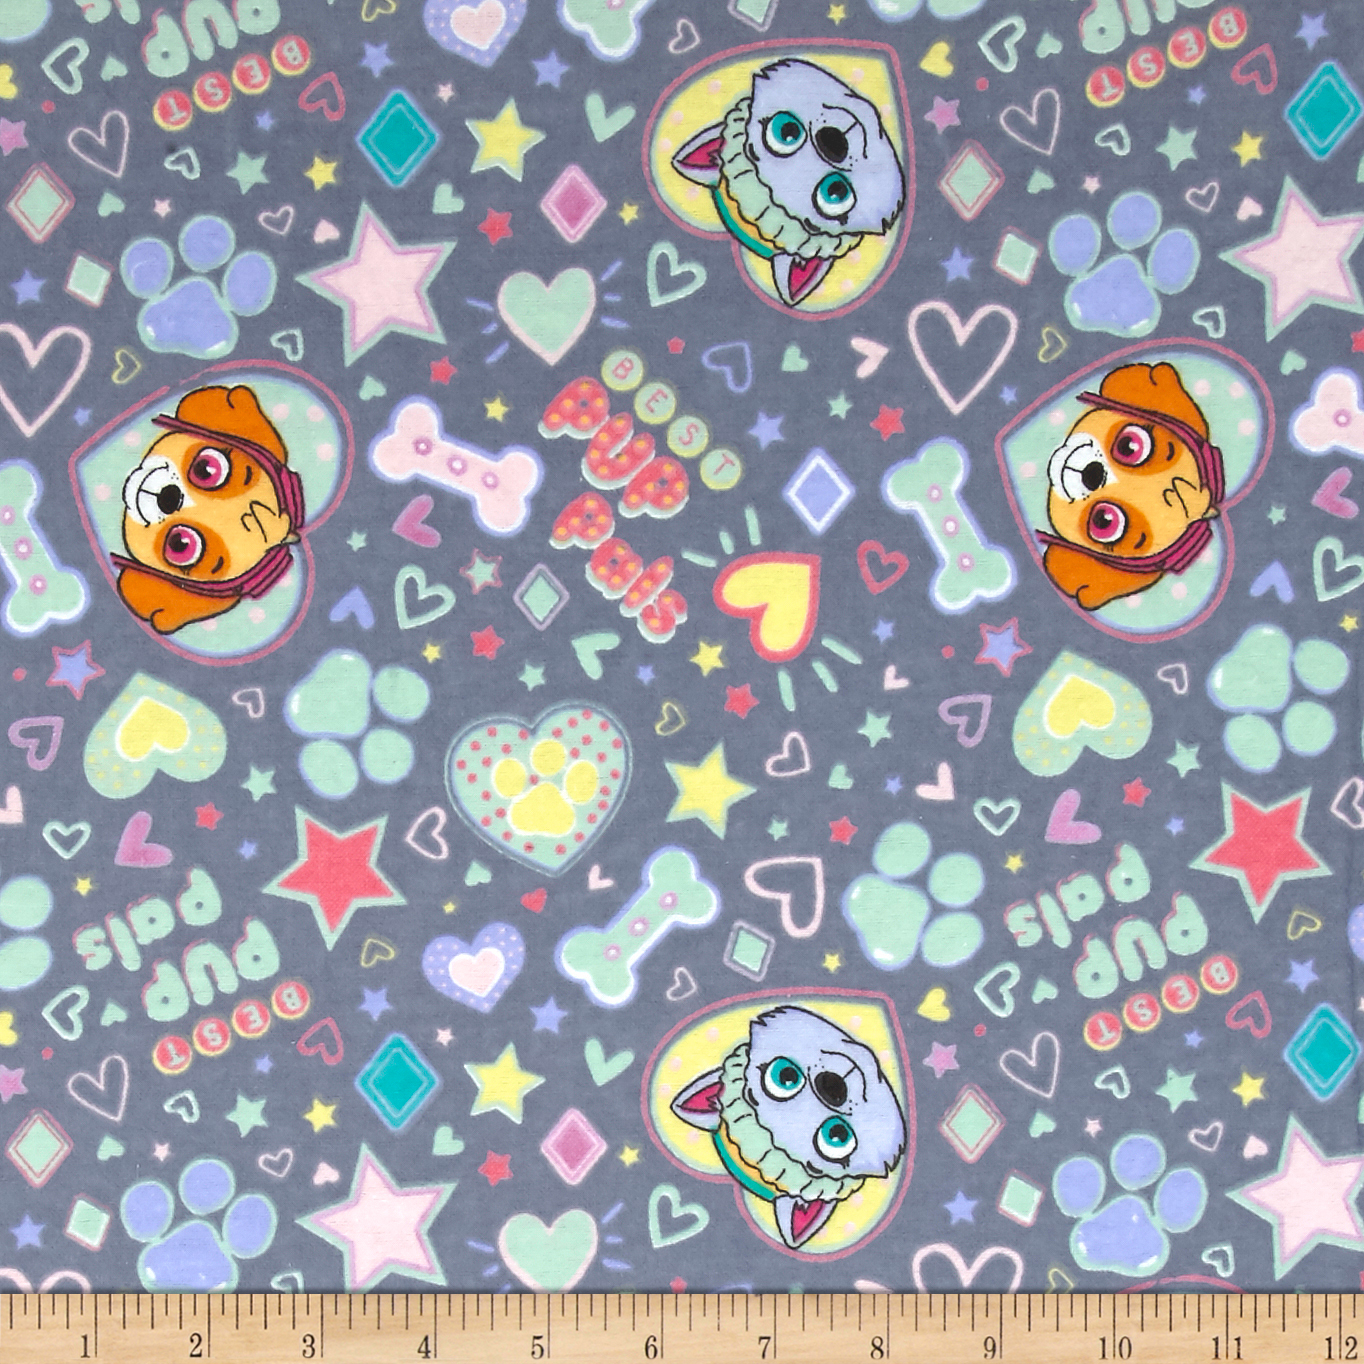 Nickelodeon Paw Patrol Pup Pals 4ever Flannel Grey Fabric